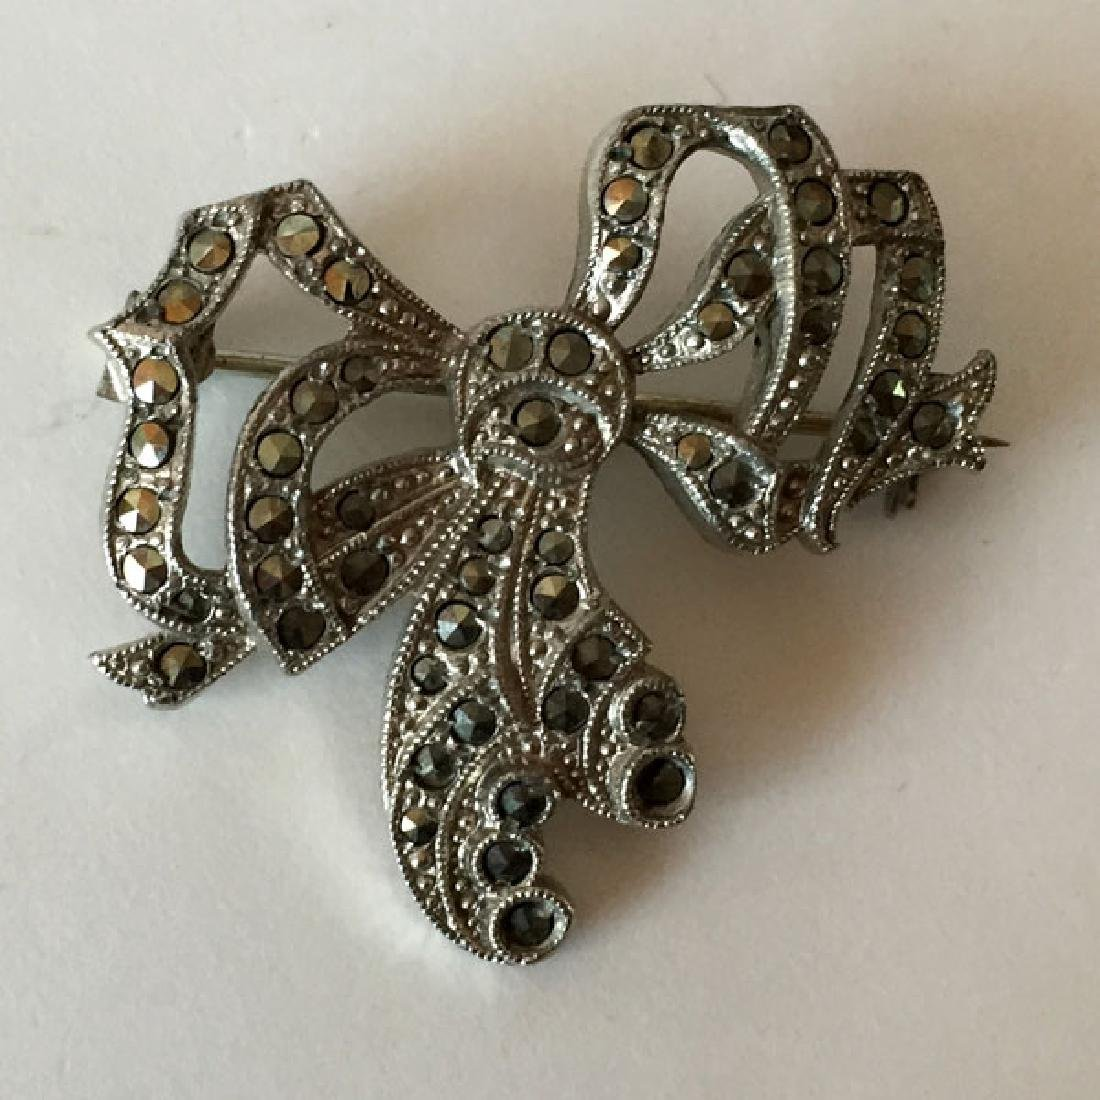 Silver tone antique finish BOW shaped brooch with